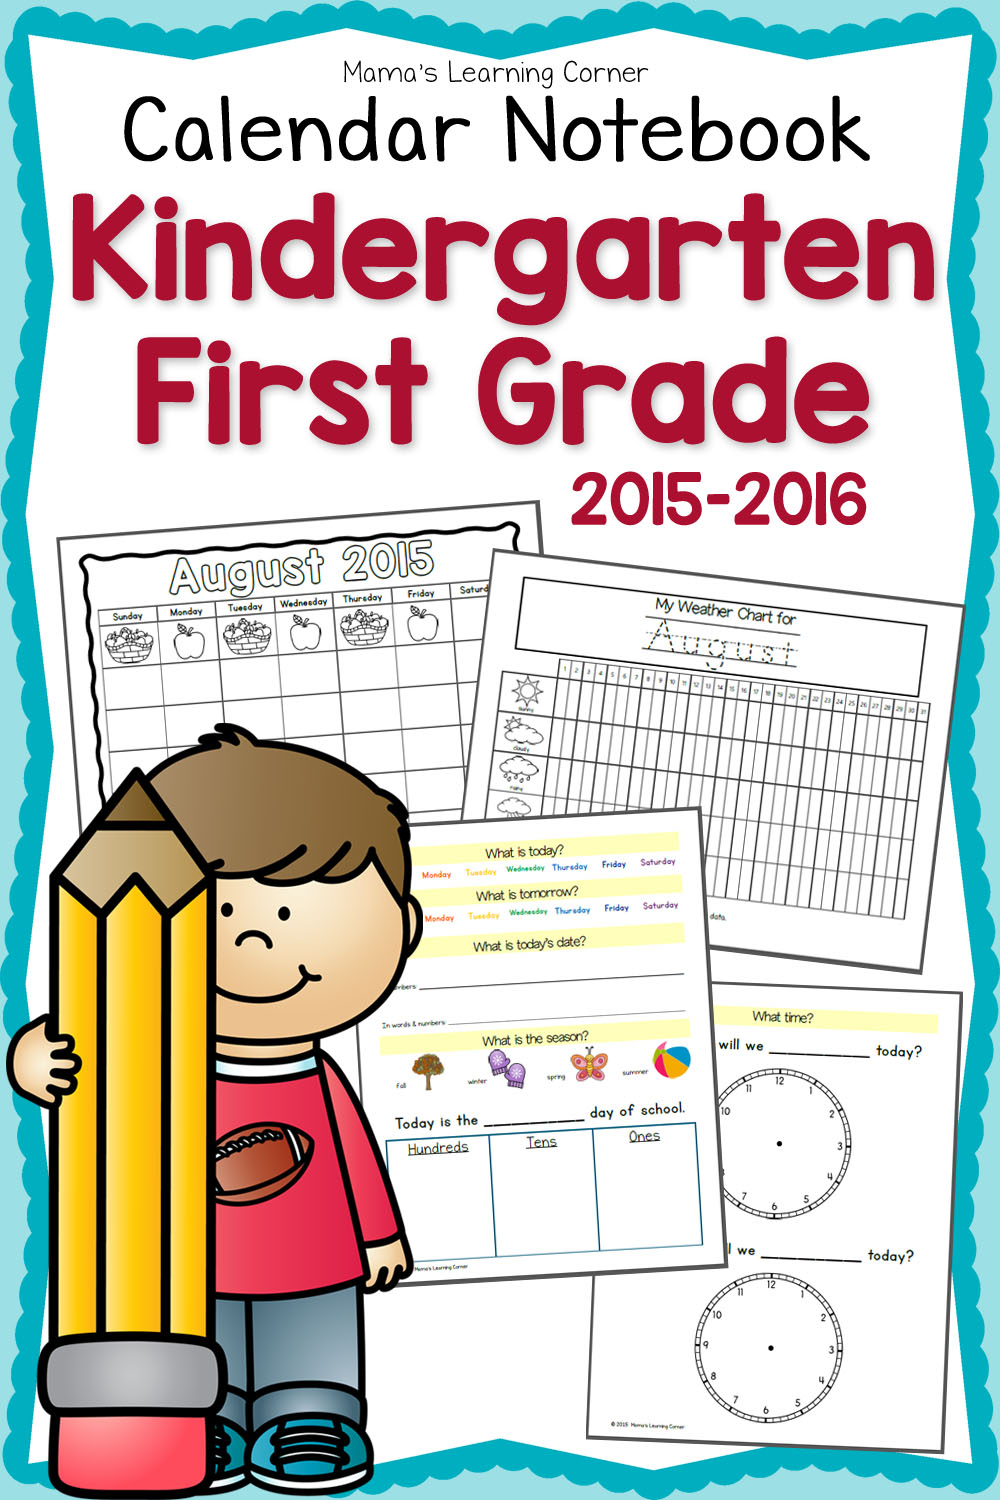 Kindergarten Calendar Notebook : Free printable first grade calendar notebook money